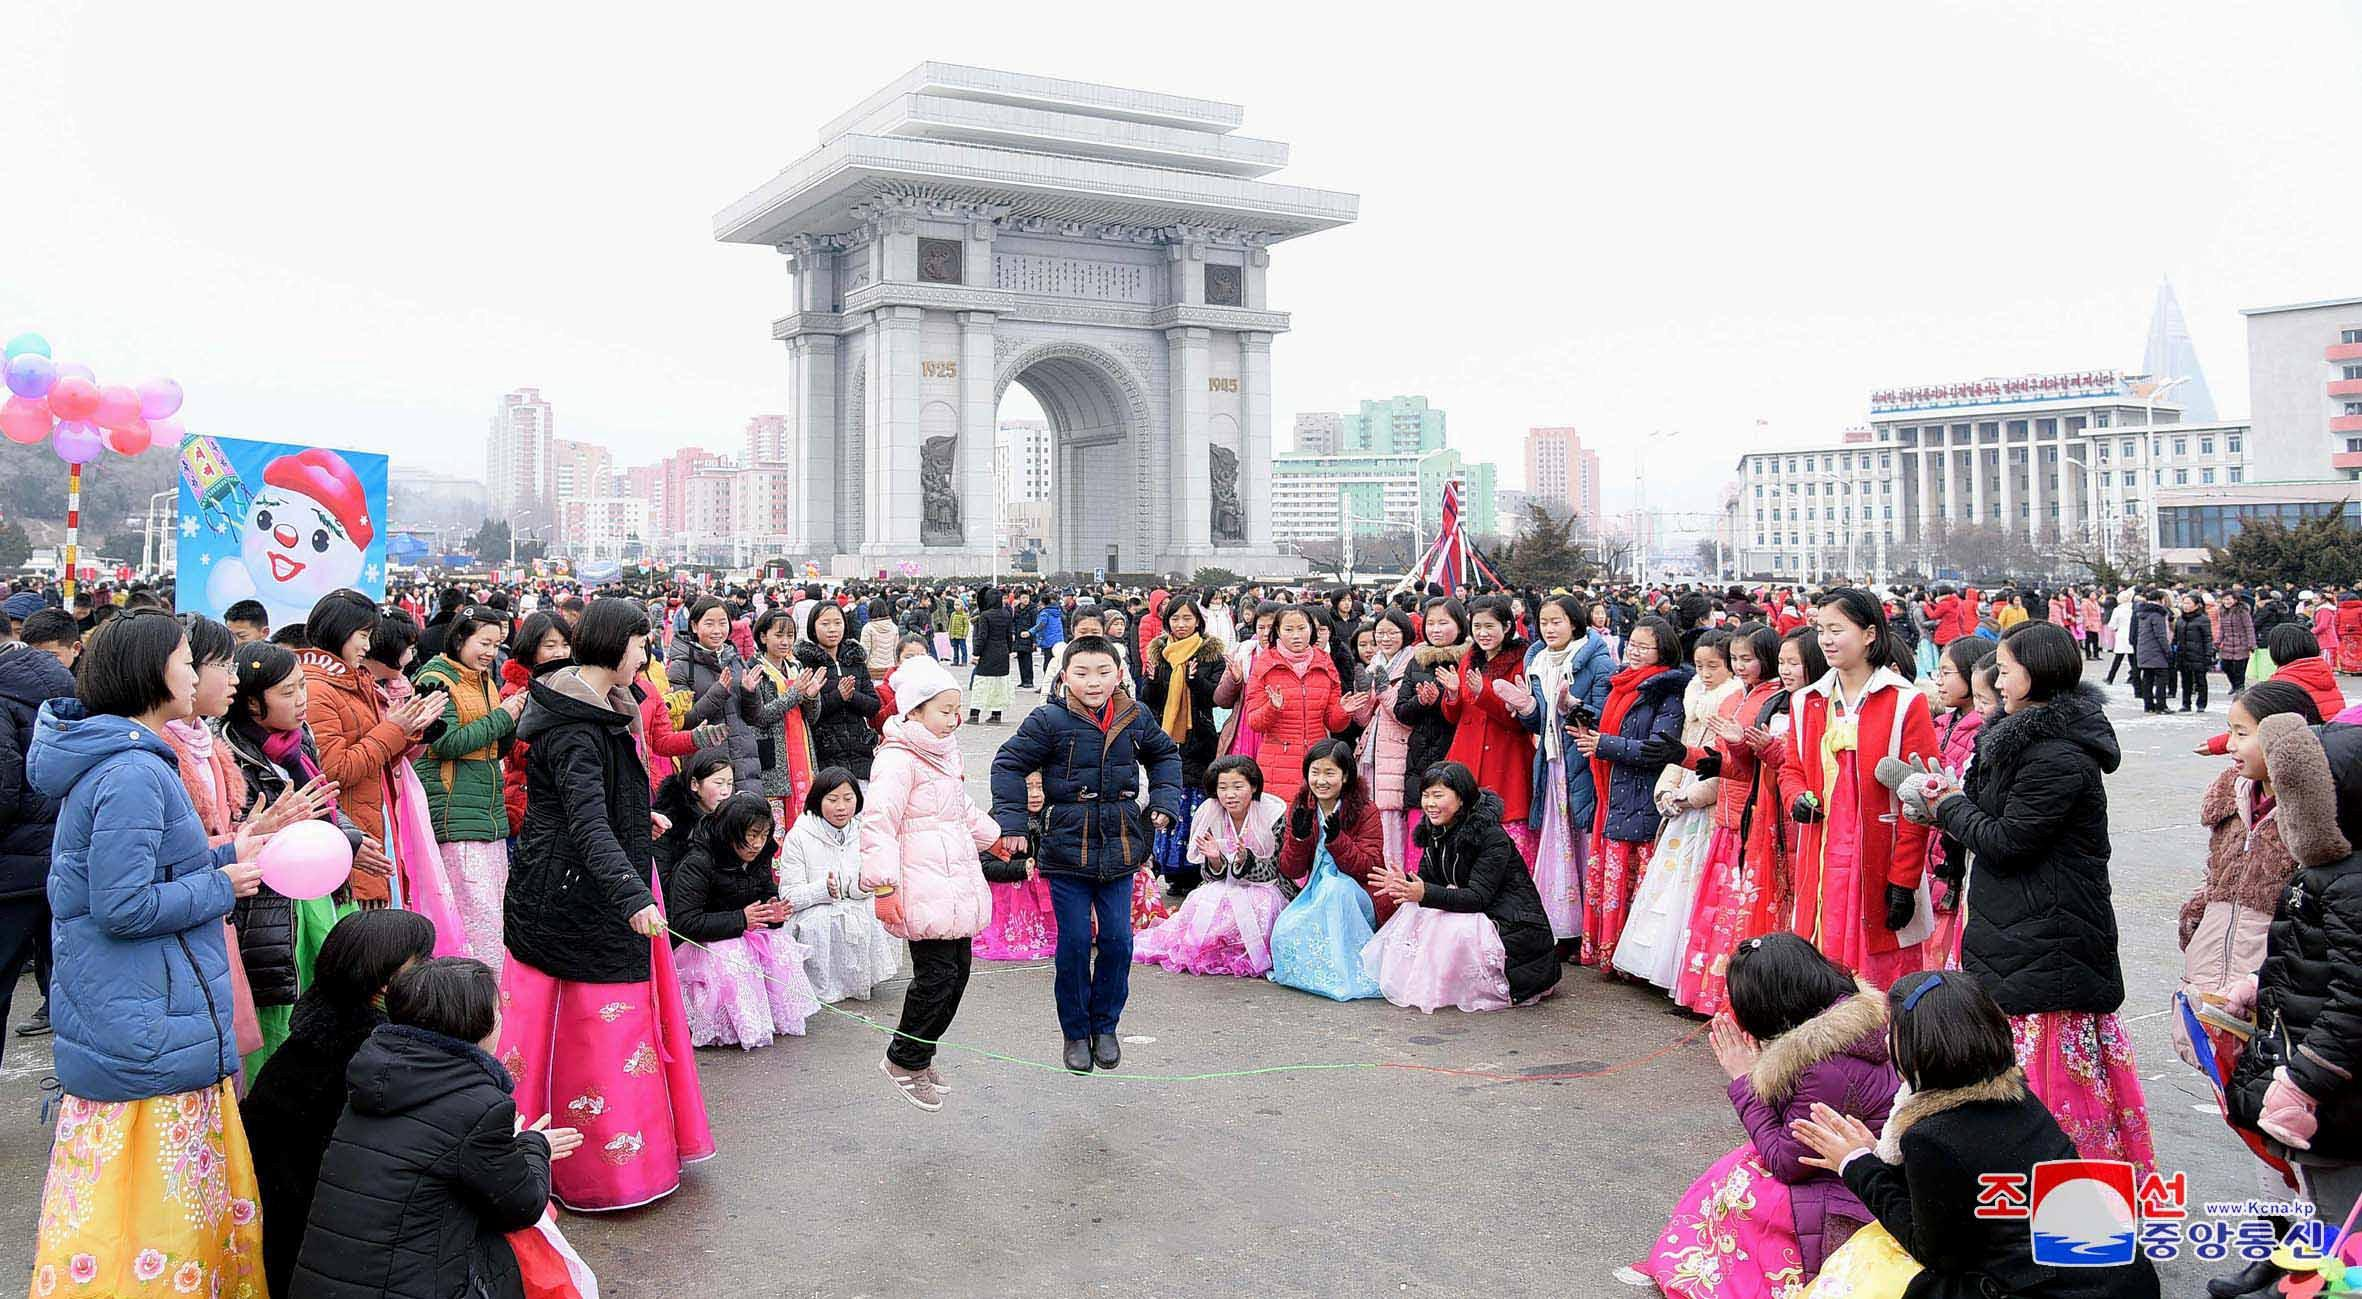 People celebrate Lunar New Year in Pyongyang, North Korea, in this KCNA photo released February 6, 2019. KCNA via REUTERS    ATTENTION EDITORS - THIS IMAGE WAS PROVIDED BY A THIRD PARTY. REUTERS IS UNABLE TO INDEPENDENTLY VERIFY THIS IMAGE. NO THIRD PARTY SALES. SOUTH KOREA OUT. NO COMMERCIAL OR EDITORIAL SALES IN SOUTH KOREA.